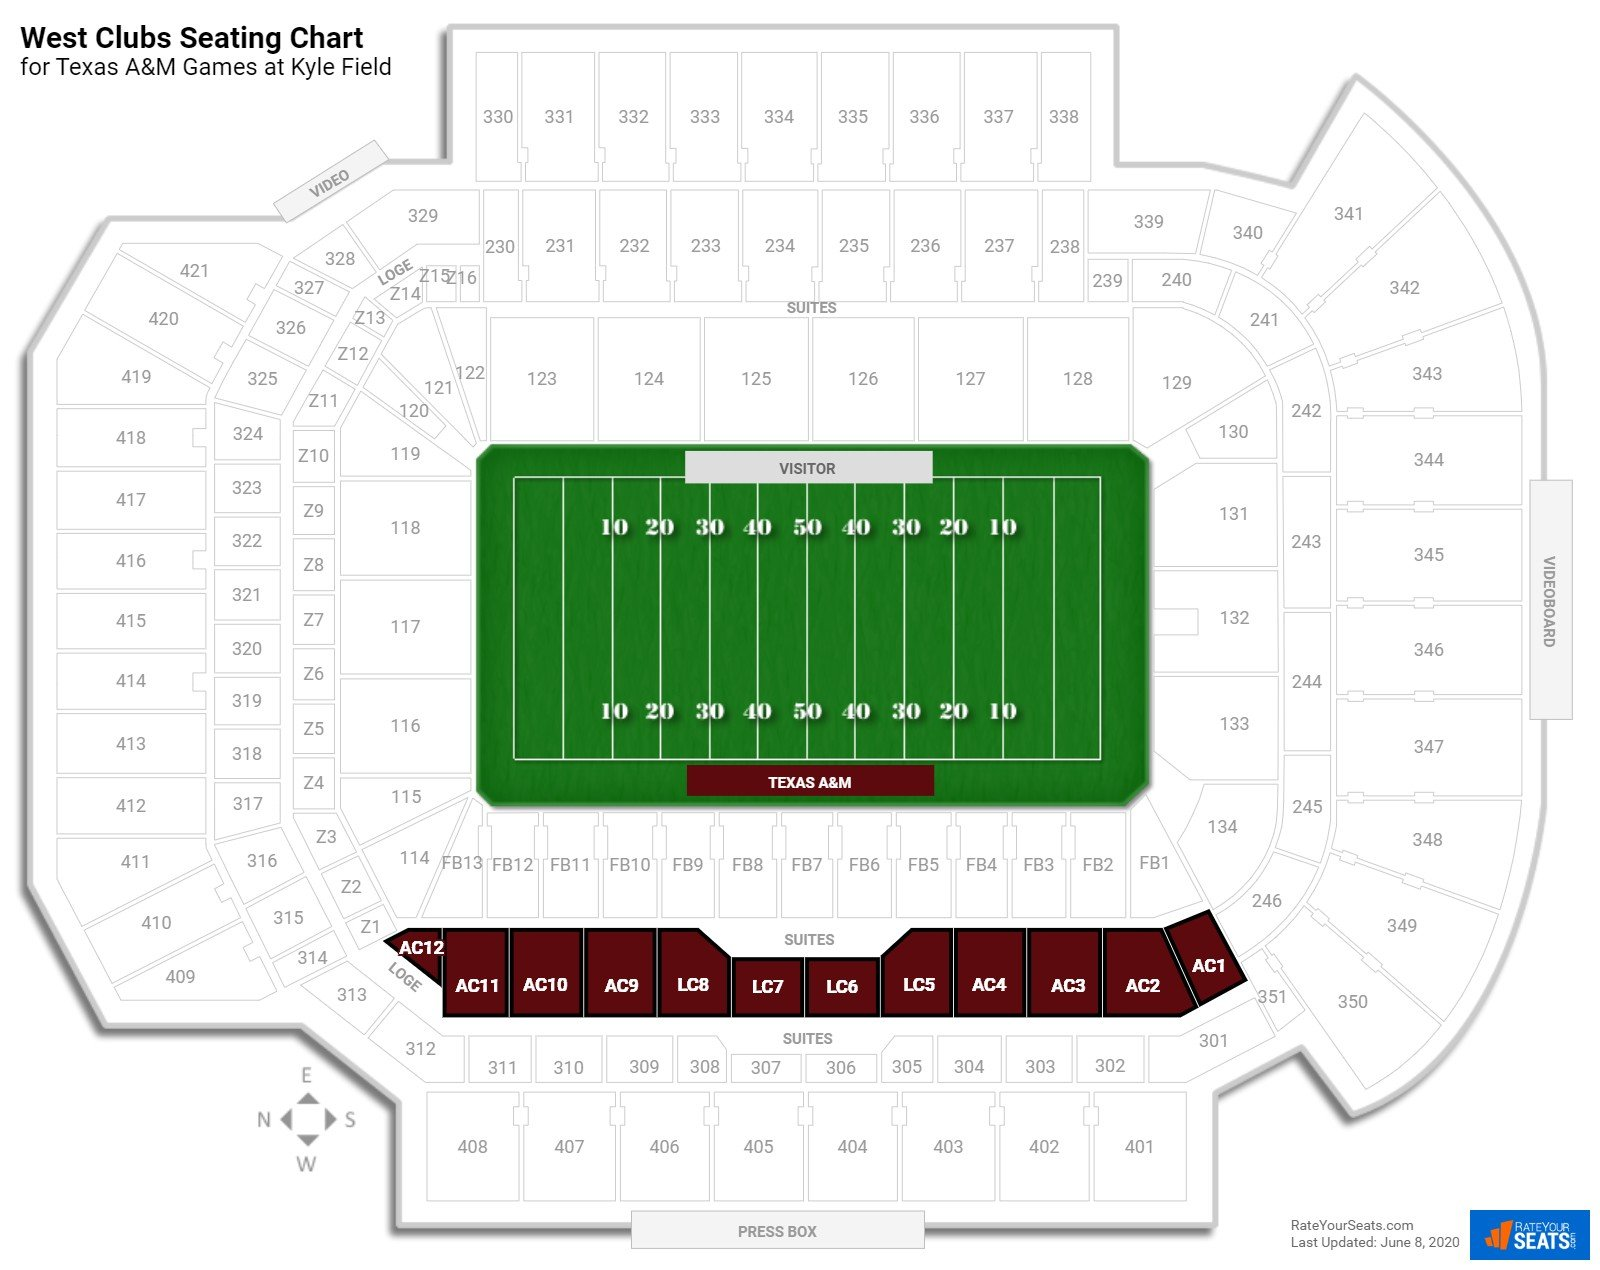 Kyle Field West Clubs seating chart